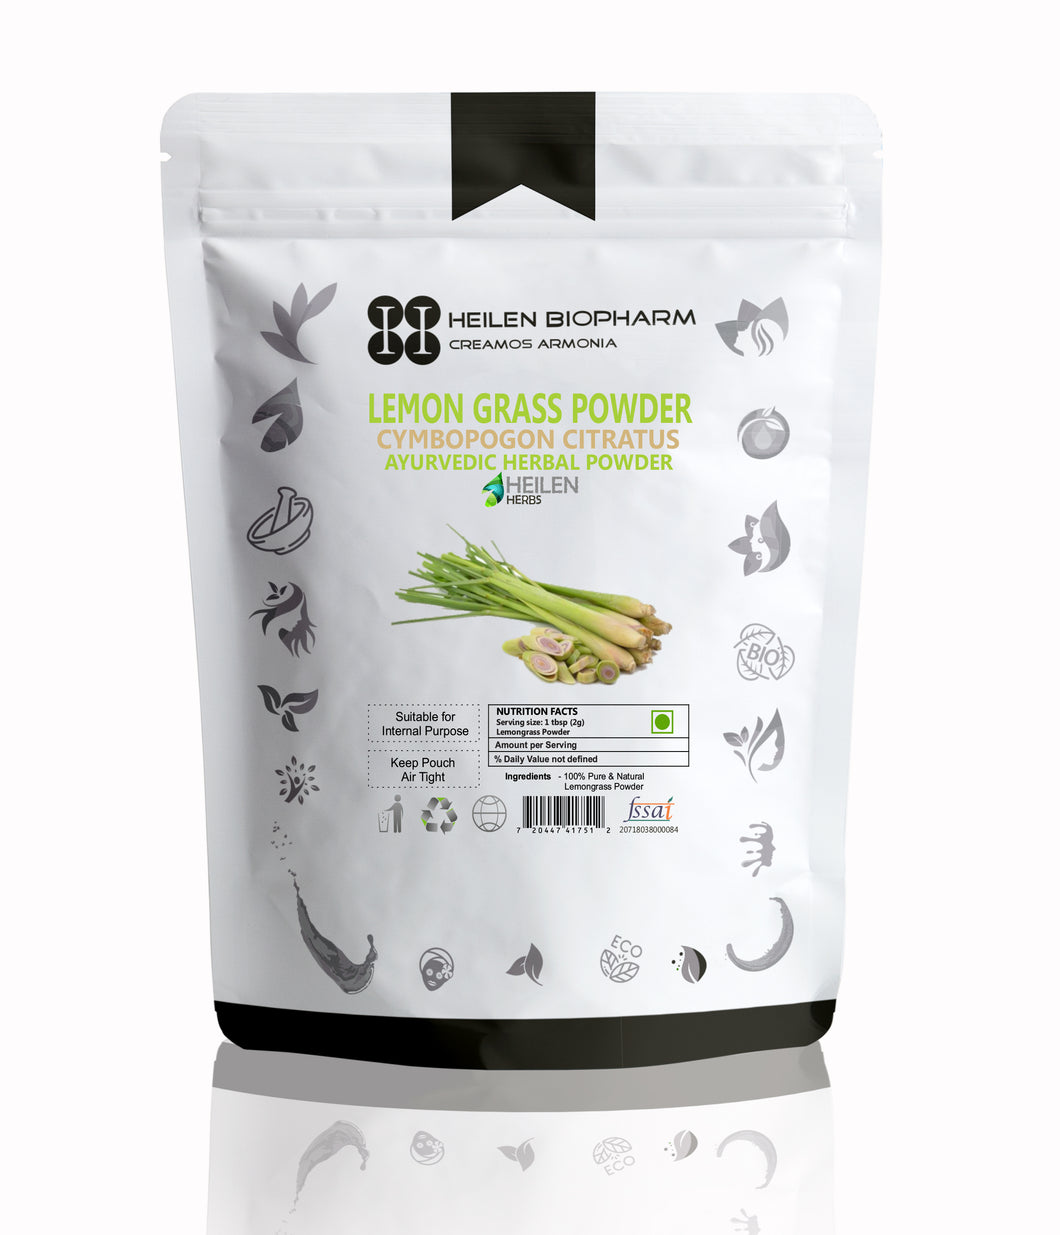 Lemon Grass Powder Face, Skin And Hair Packs - High In Nutrients, Minerals And Vitamines, Superfood!